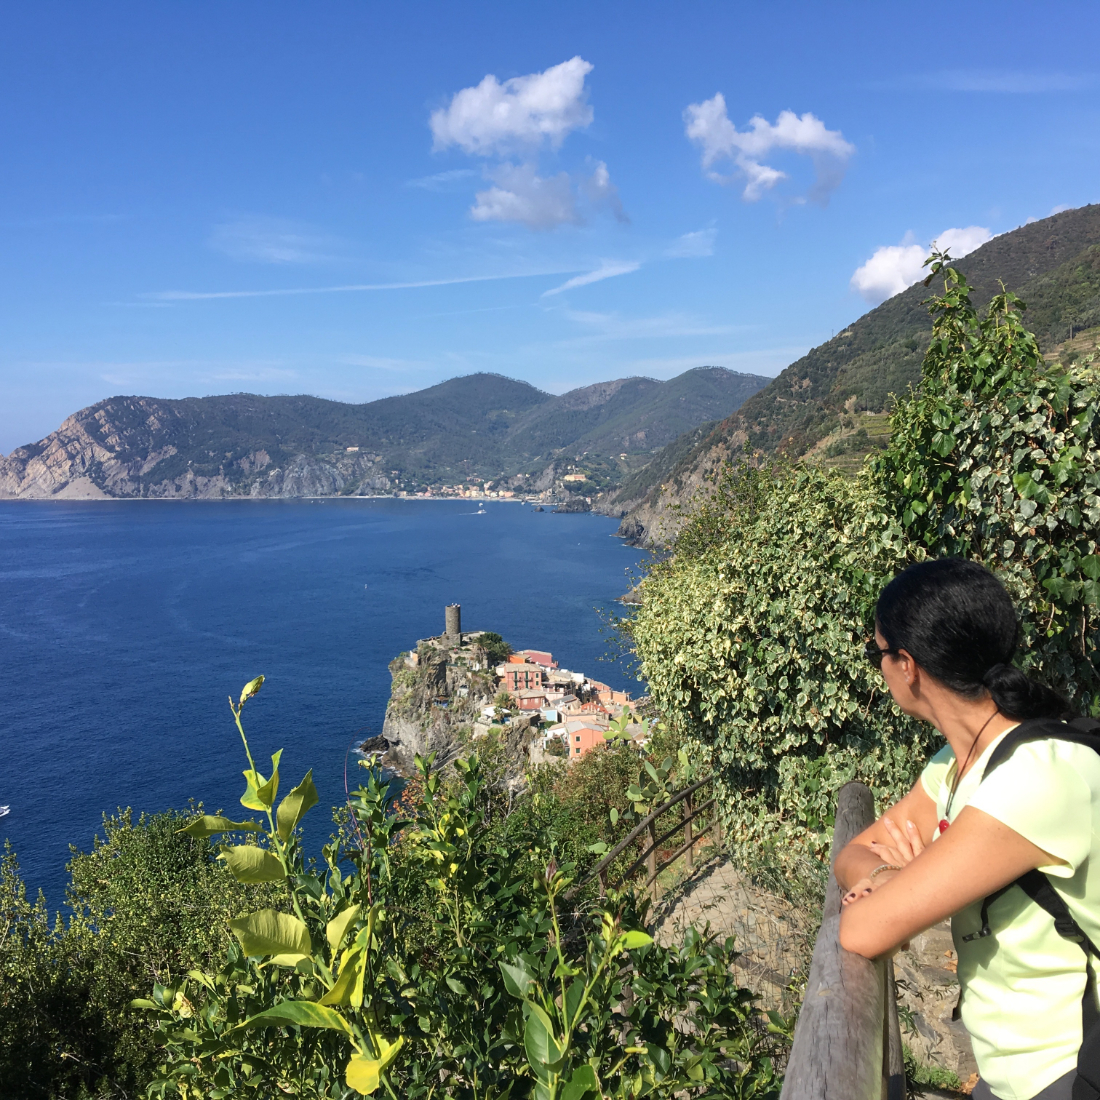 Bright blue sea and sky as a woman looks out from behind a railing along the hiking trail in Cinque Terre Italy